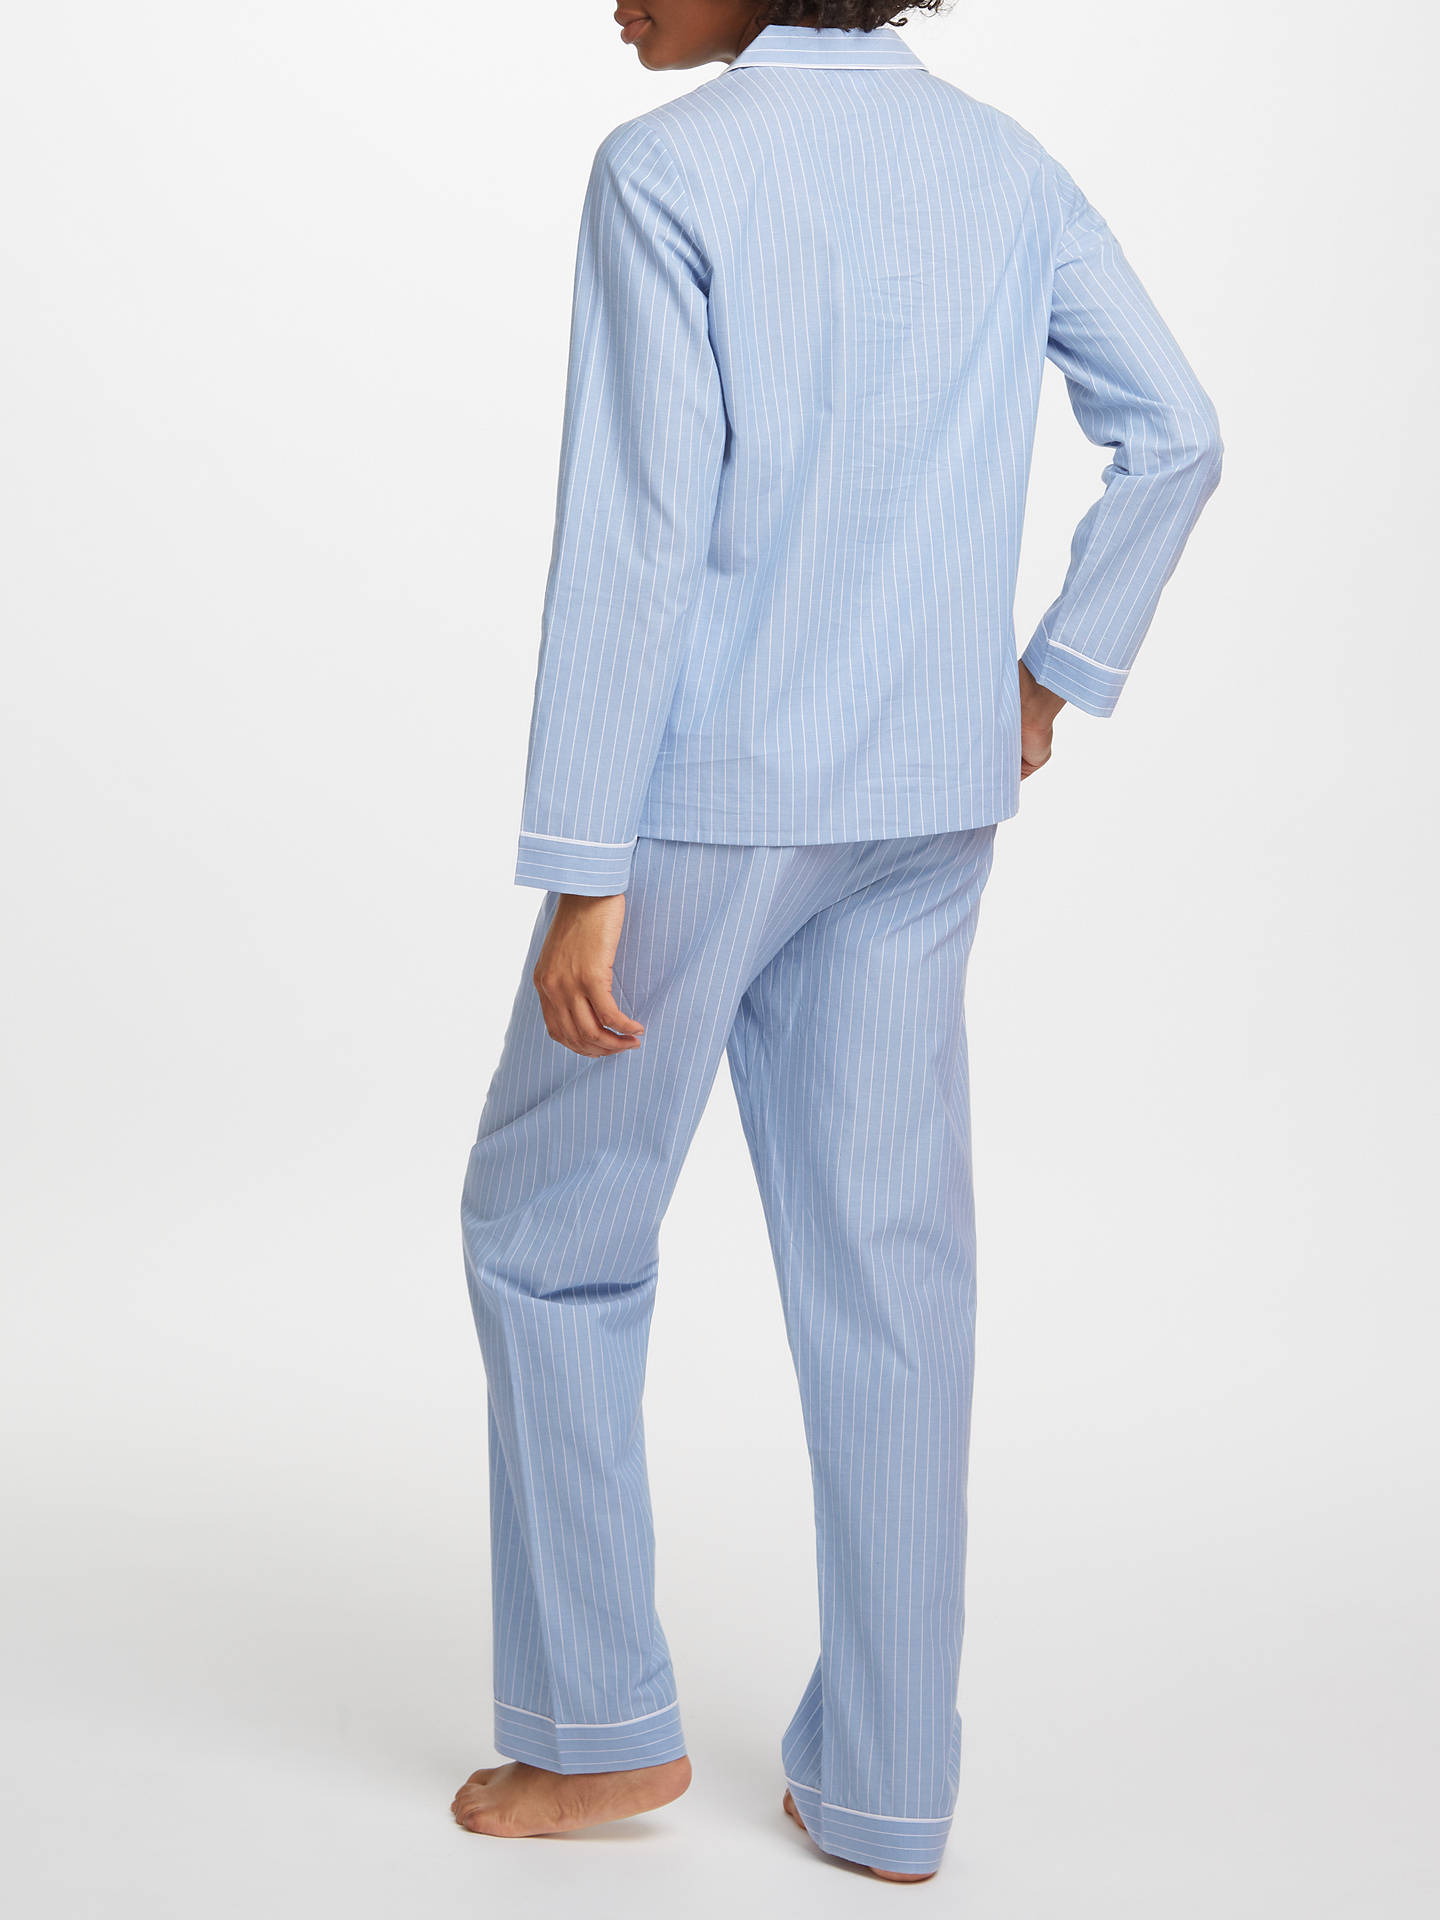 Buy John Lewis & Partners Chambray Stripe Pyjama Set, Blue, 8 Online at johnlewis.com